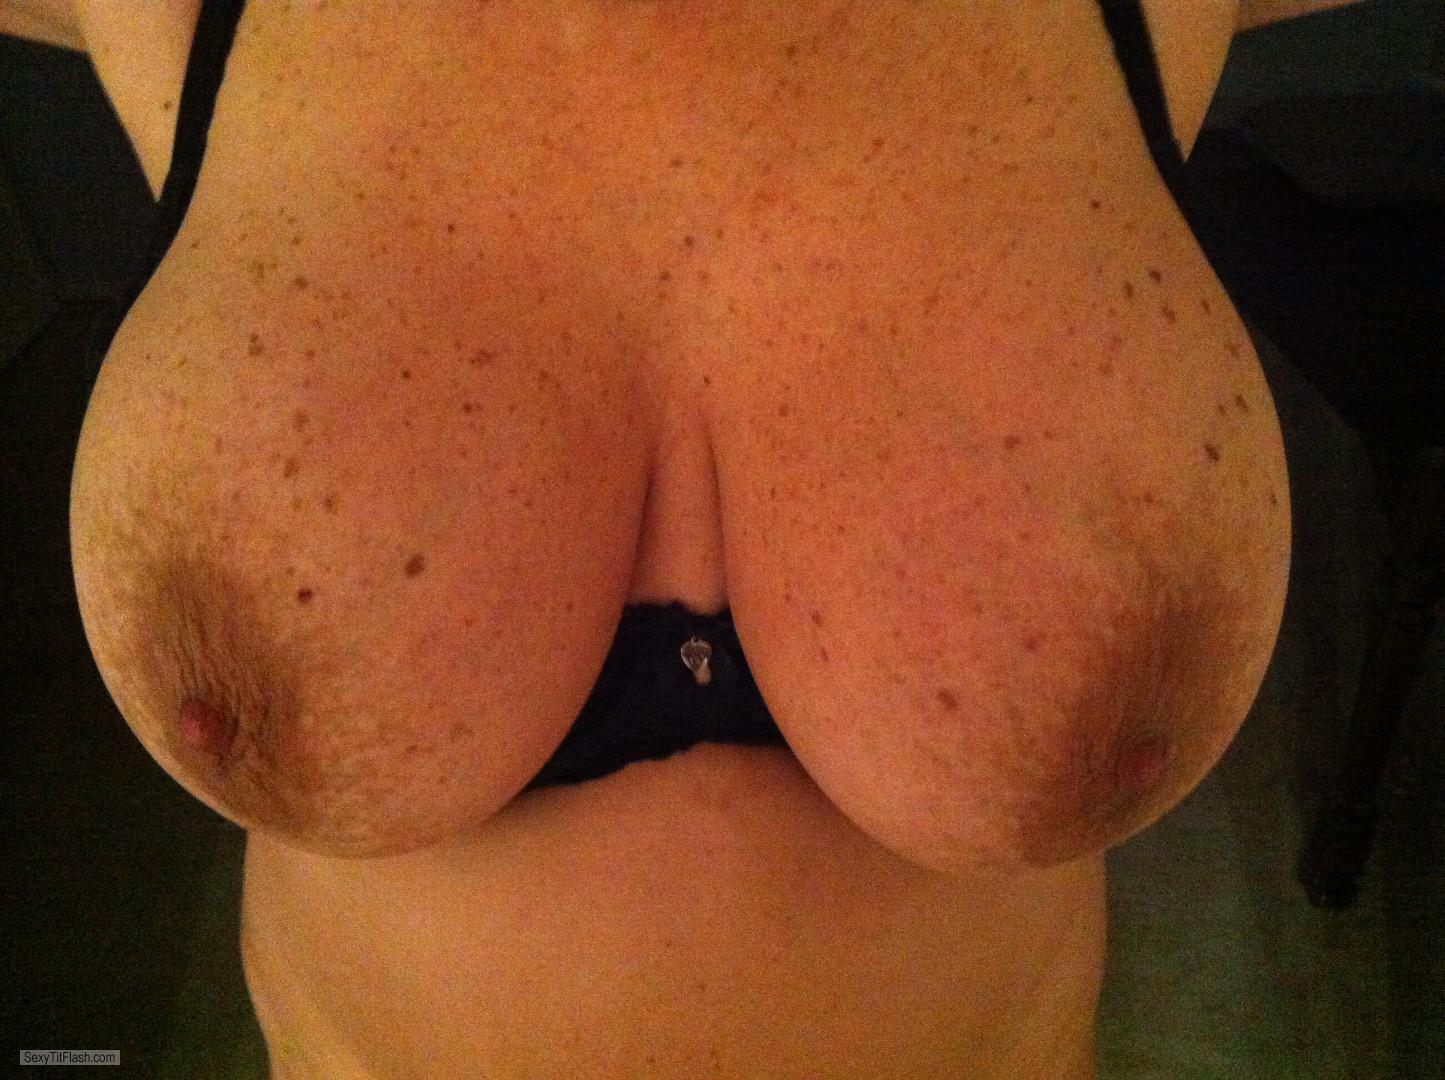 My Big Tits Selfie by Tiedupshot